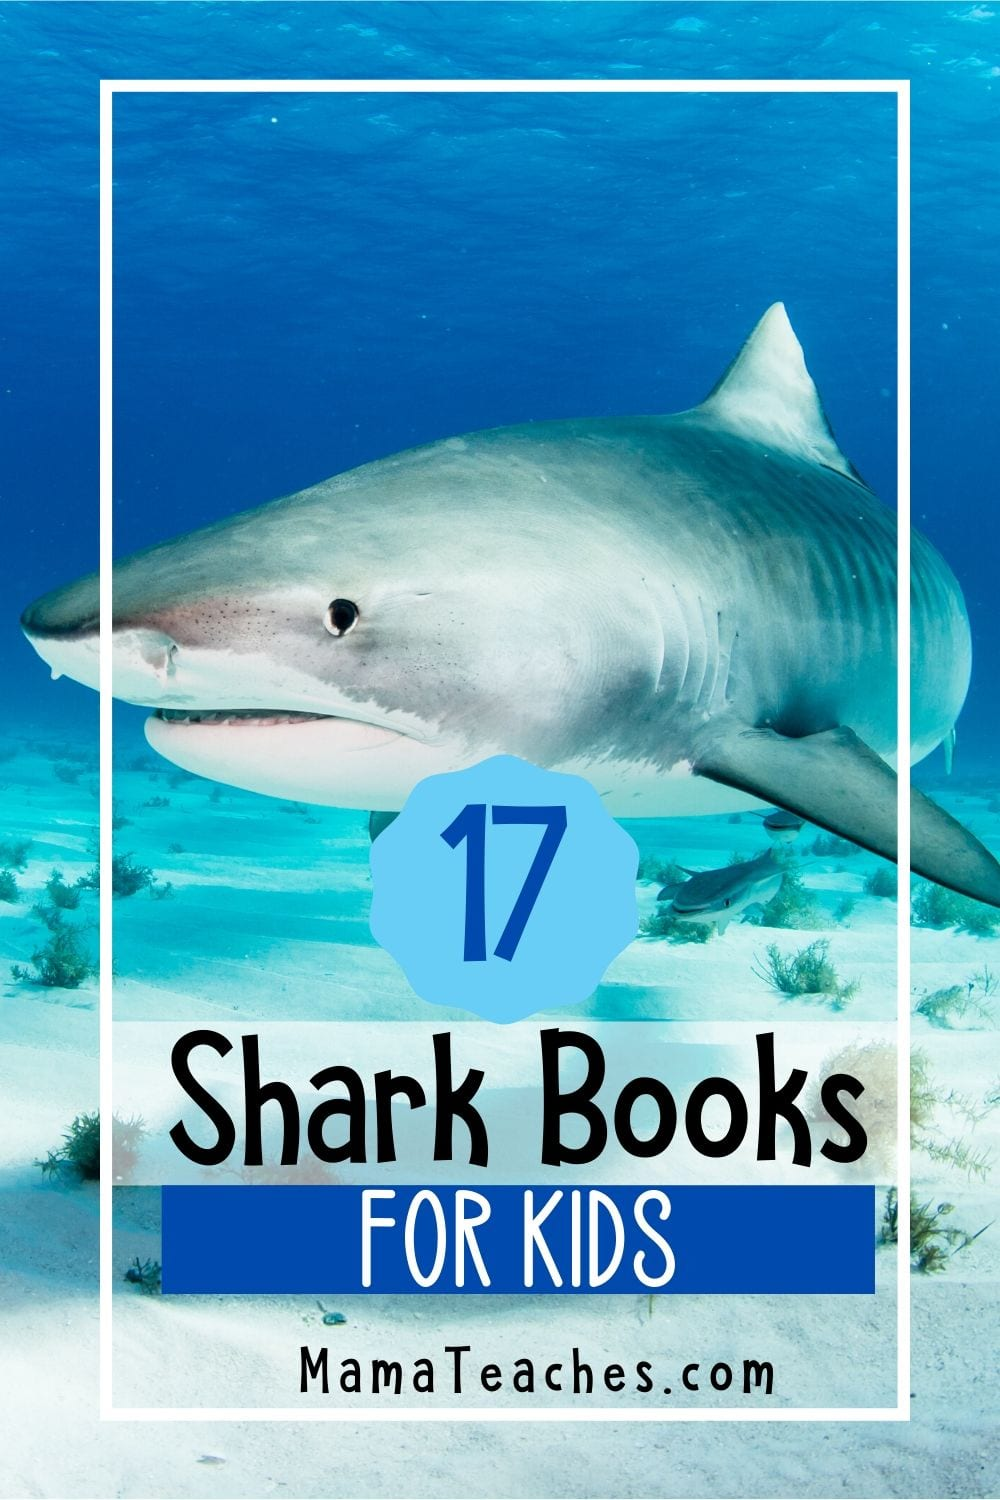 17 Shark Books for Kids - Books About Sharks for Children in Preschool through Middle School - Great for Summer Reading -  MamaTeaches.com